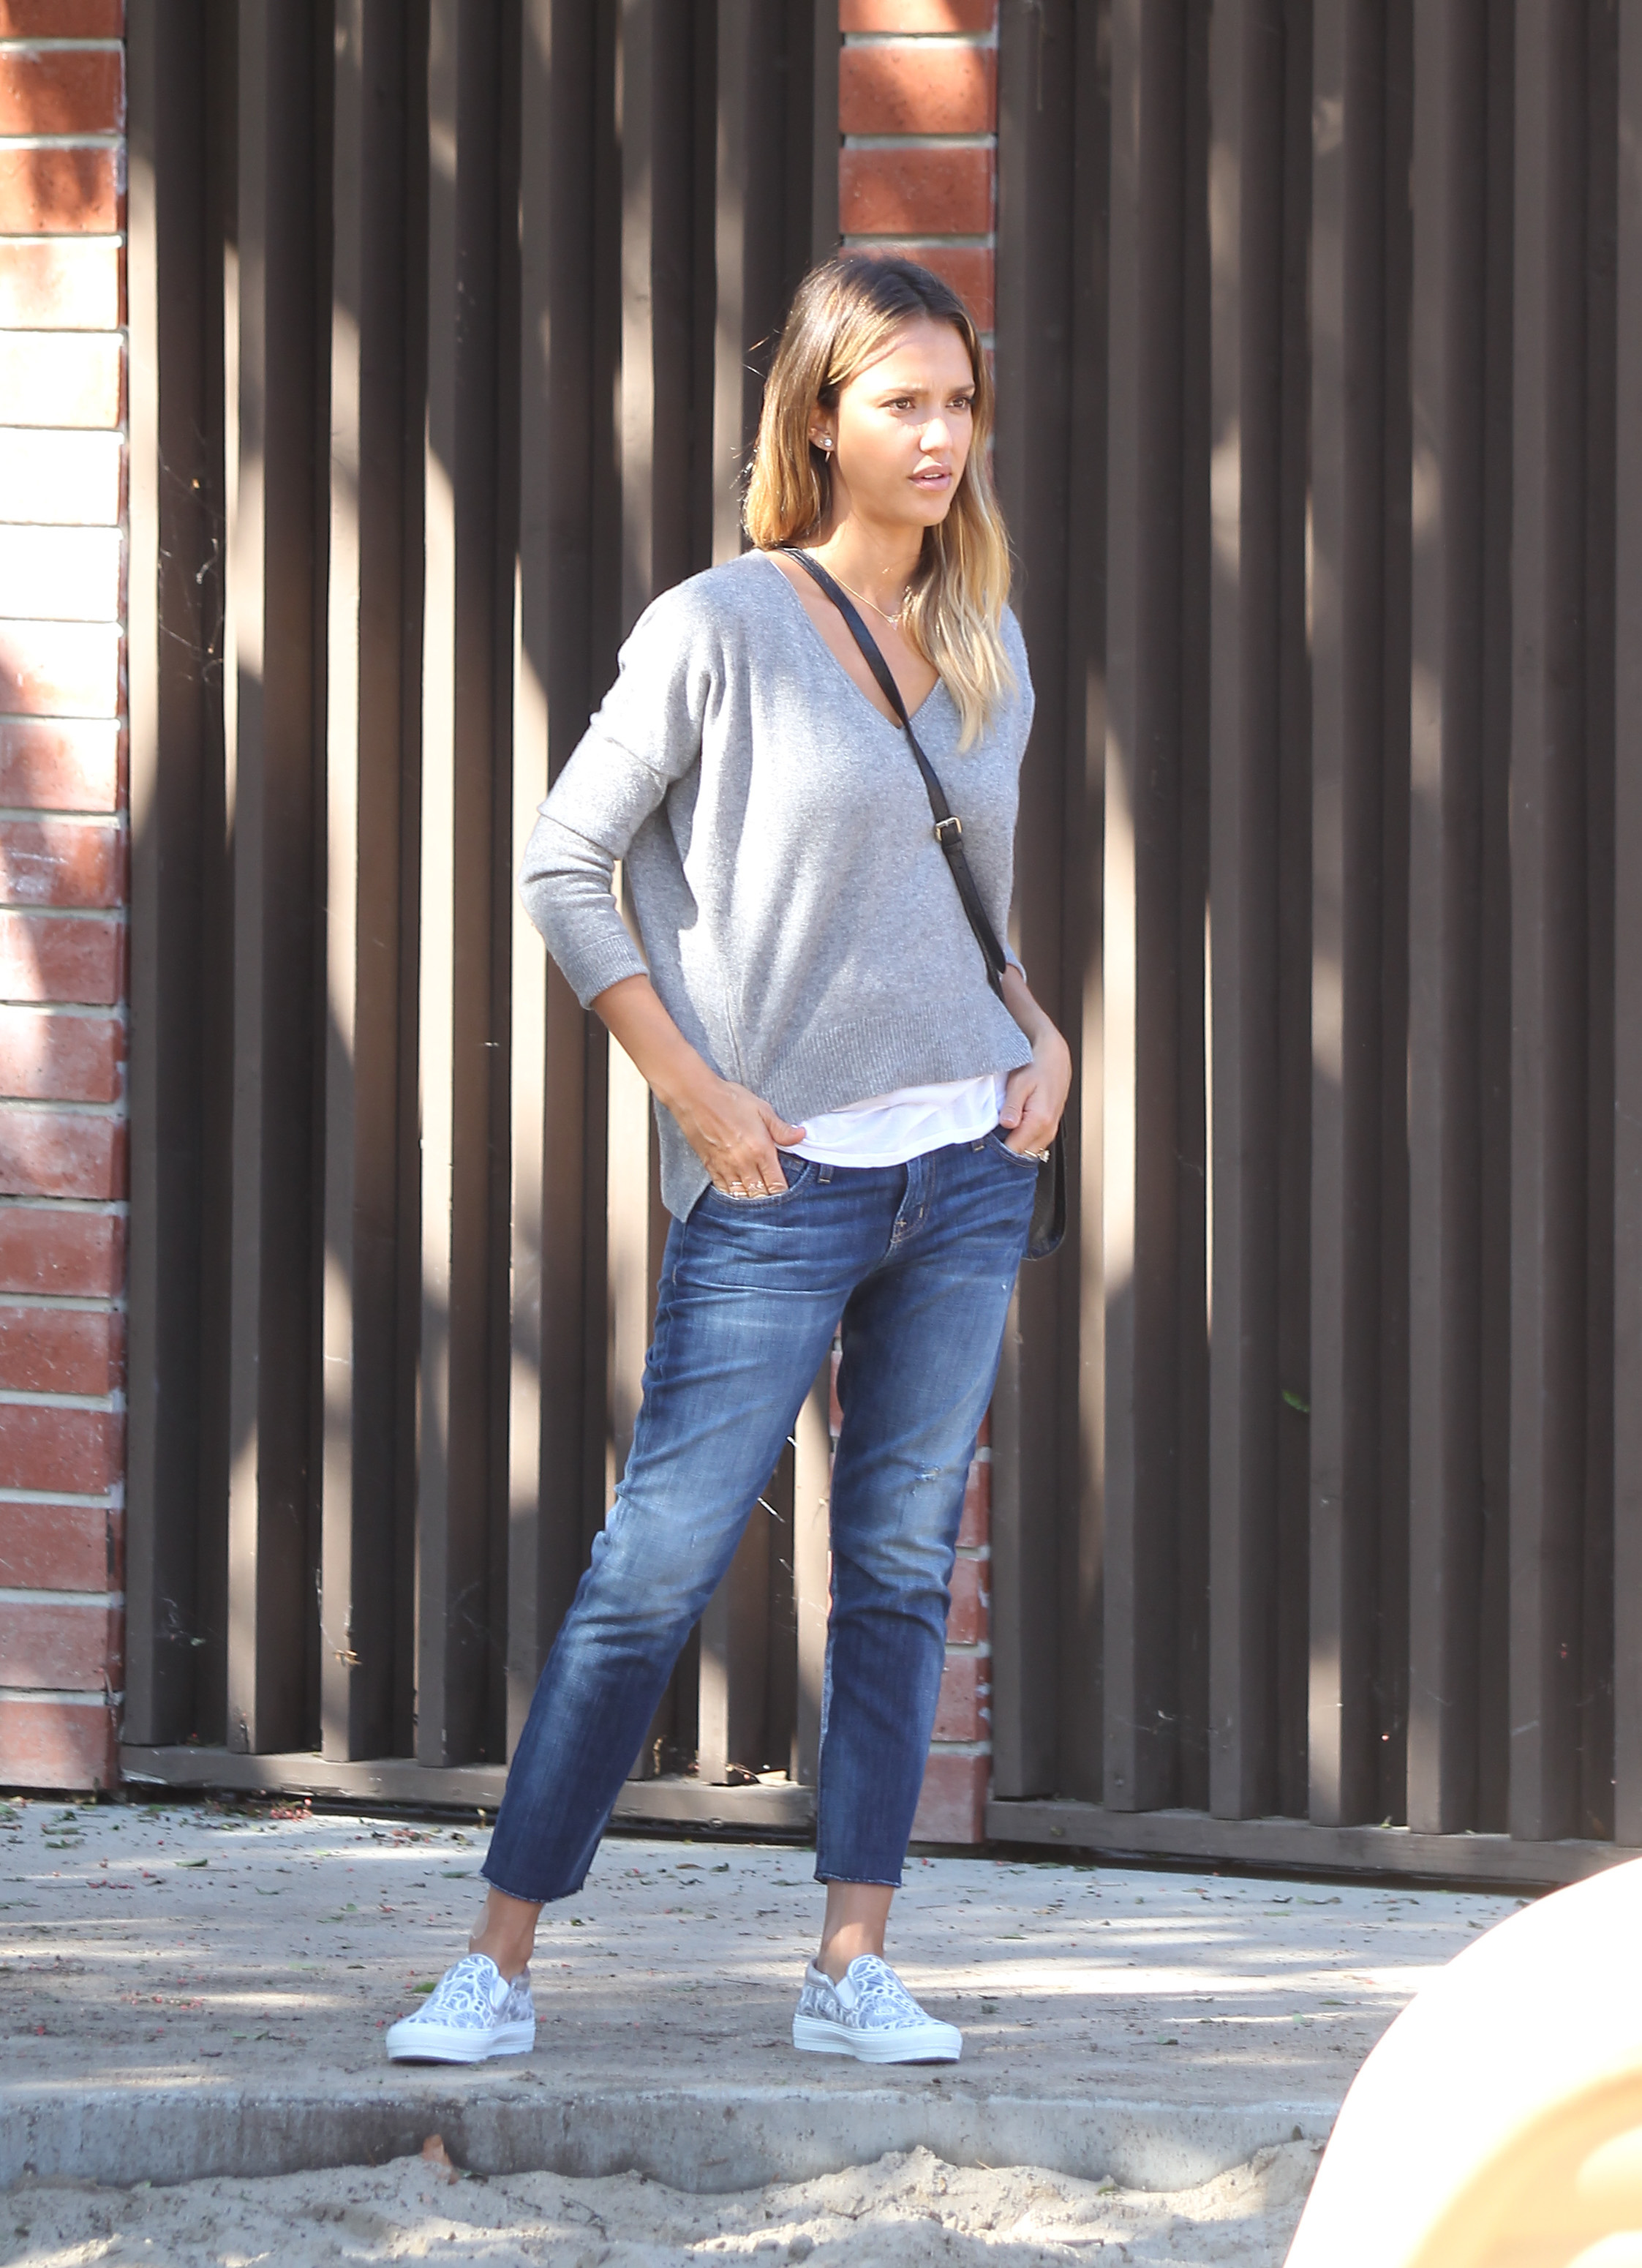 Jessica Alba Cropped Jeans White Tee Grey Sweater Mom Style Weekend Style Closetful Of Clothes